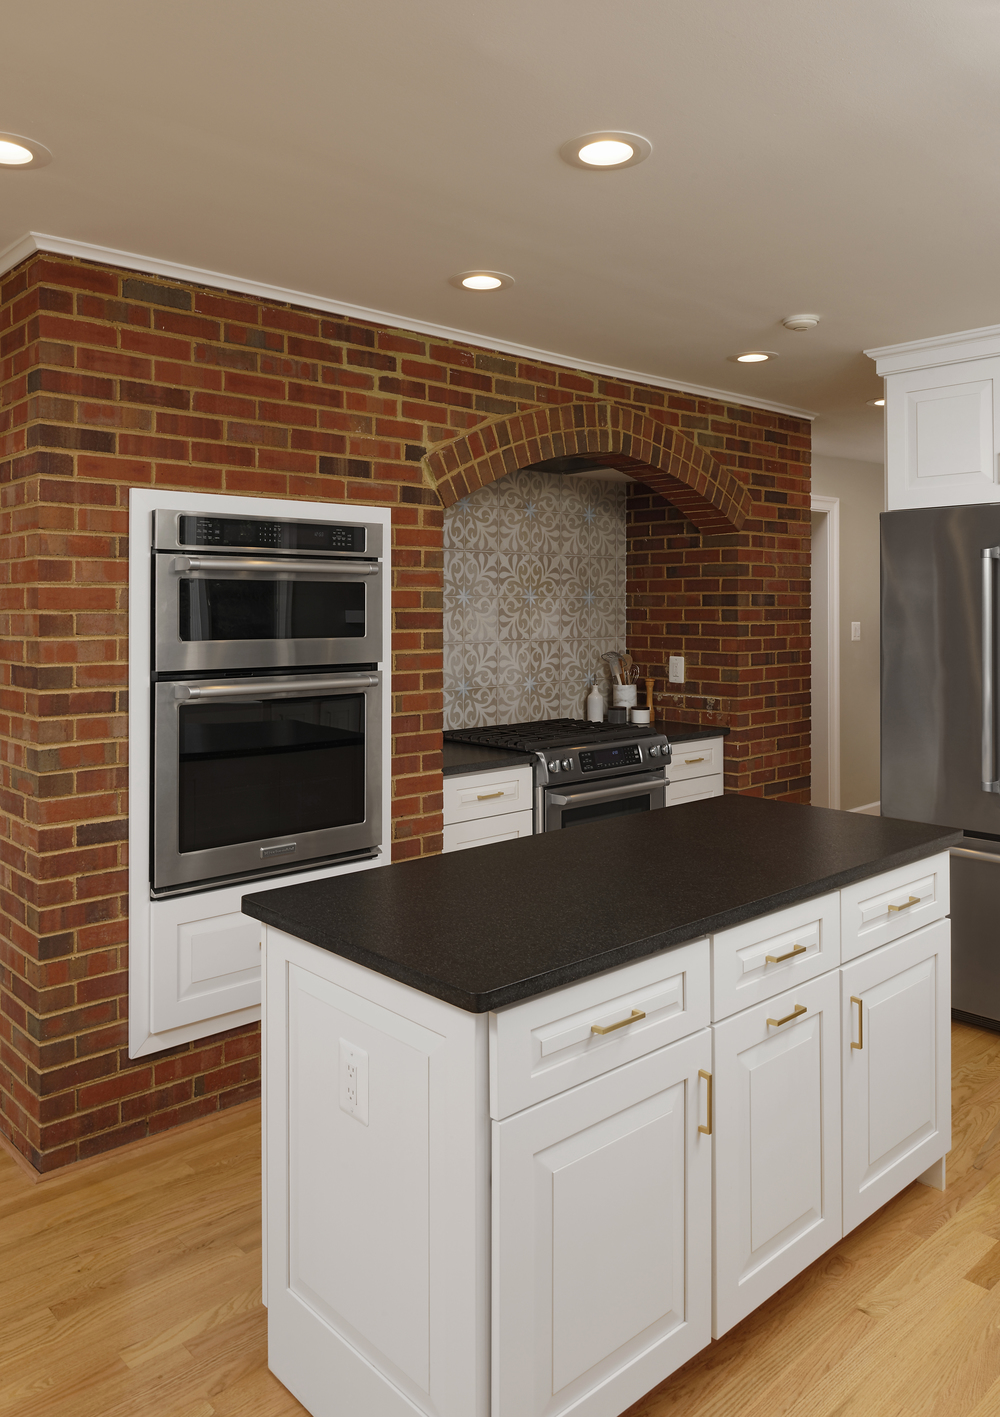 Clifton Virginia Kitchen Remodel using White raised panel cabinets and honed jet black granite.